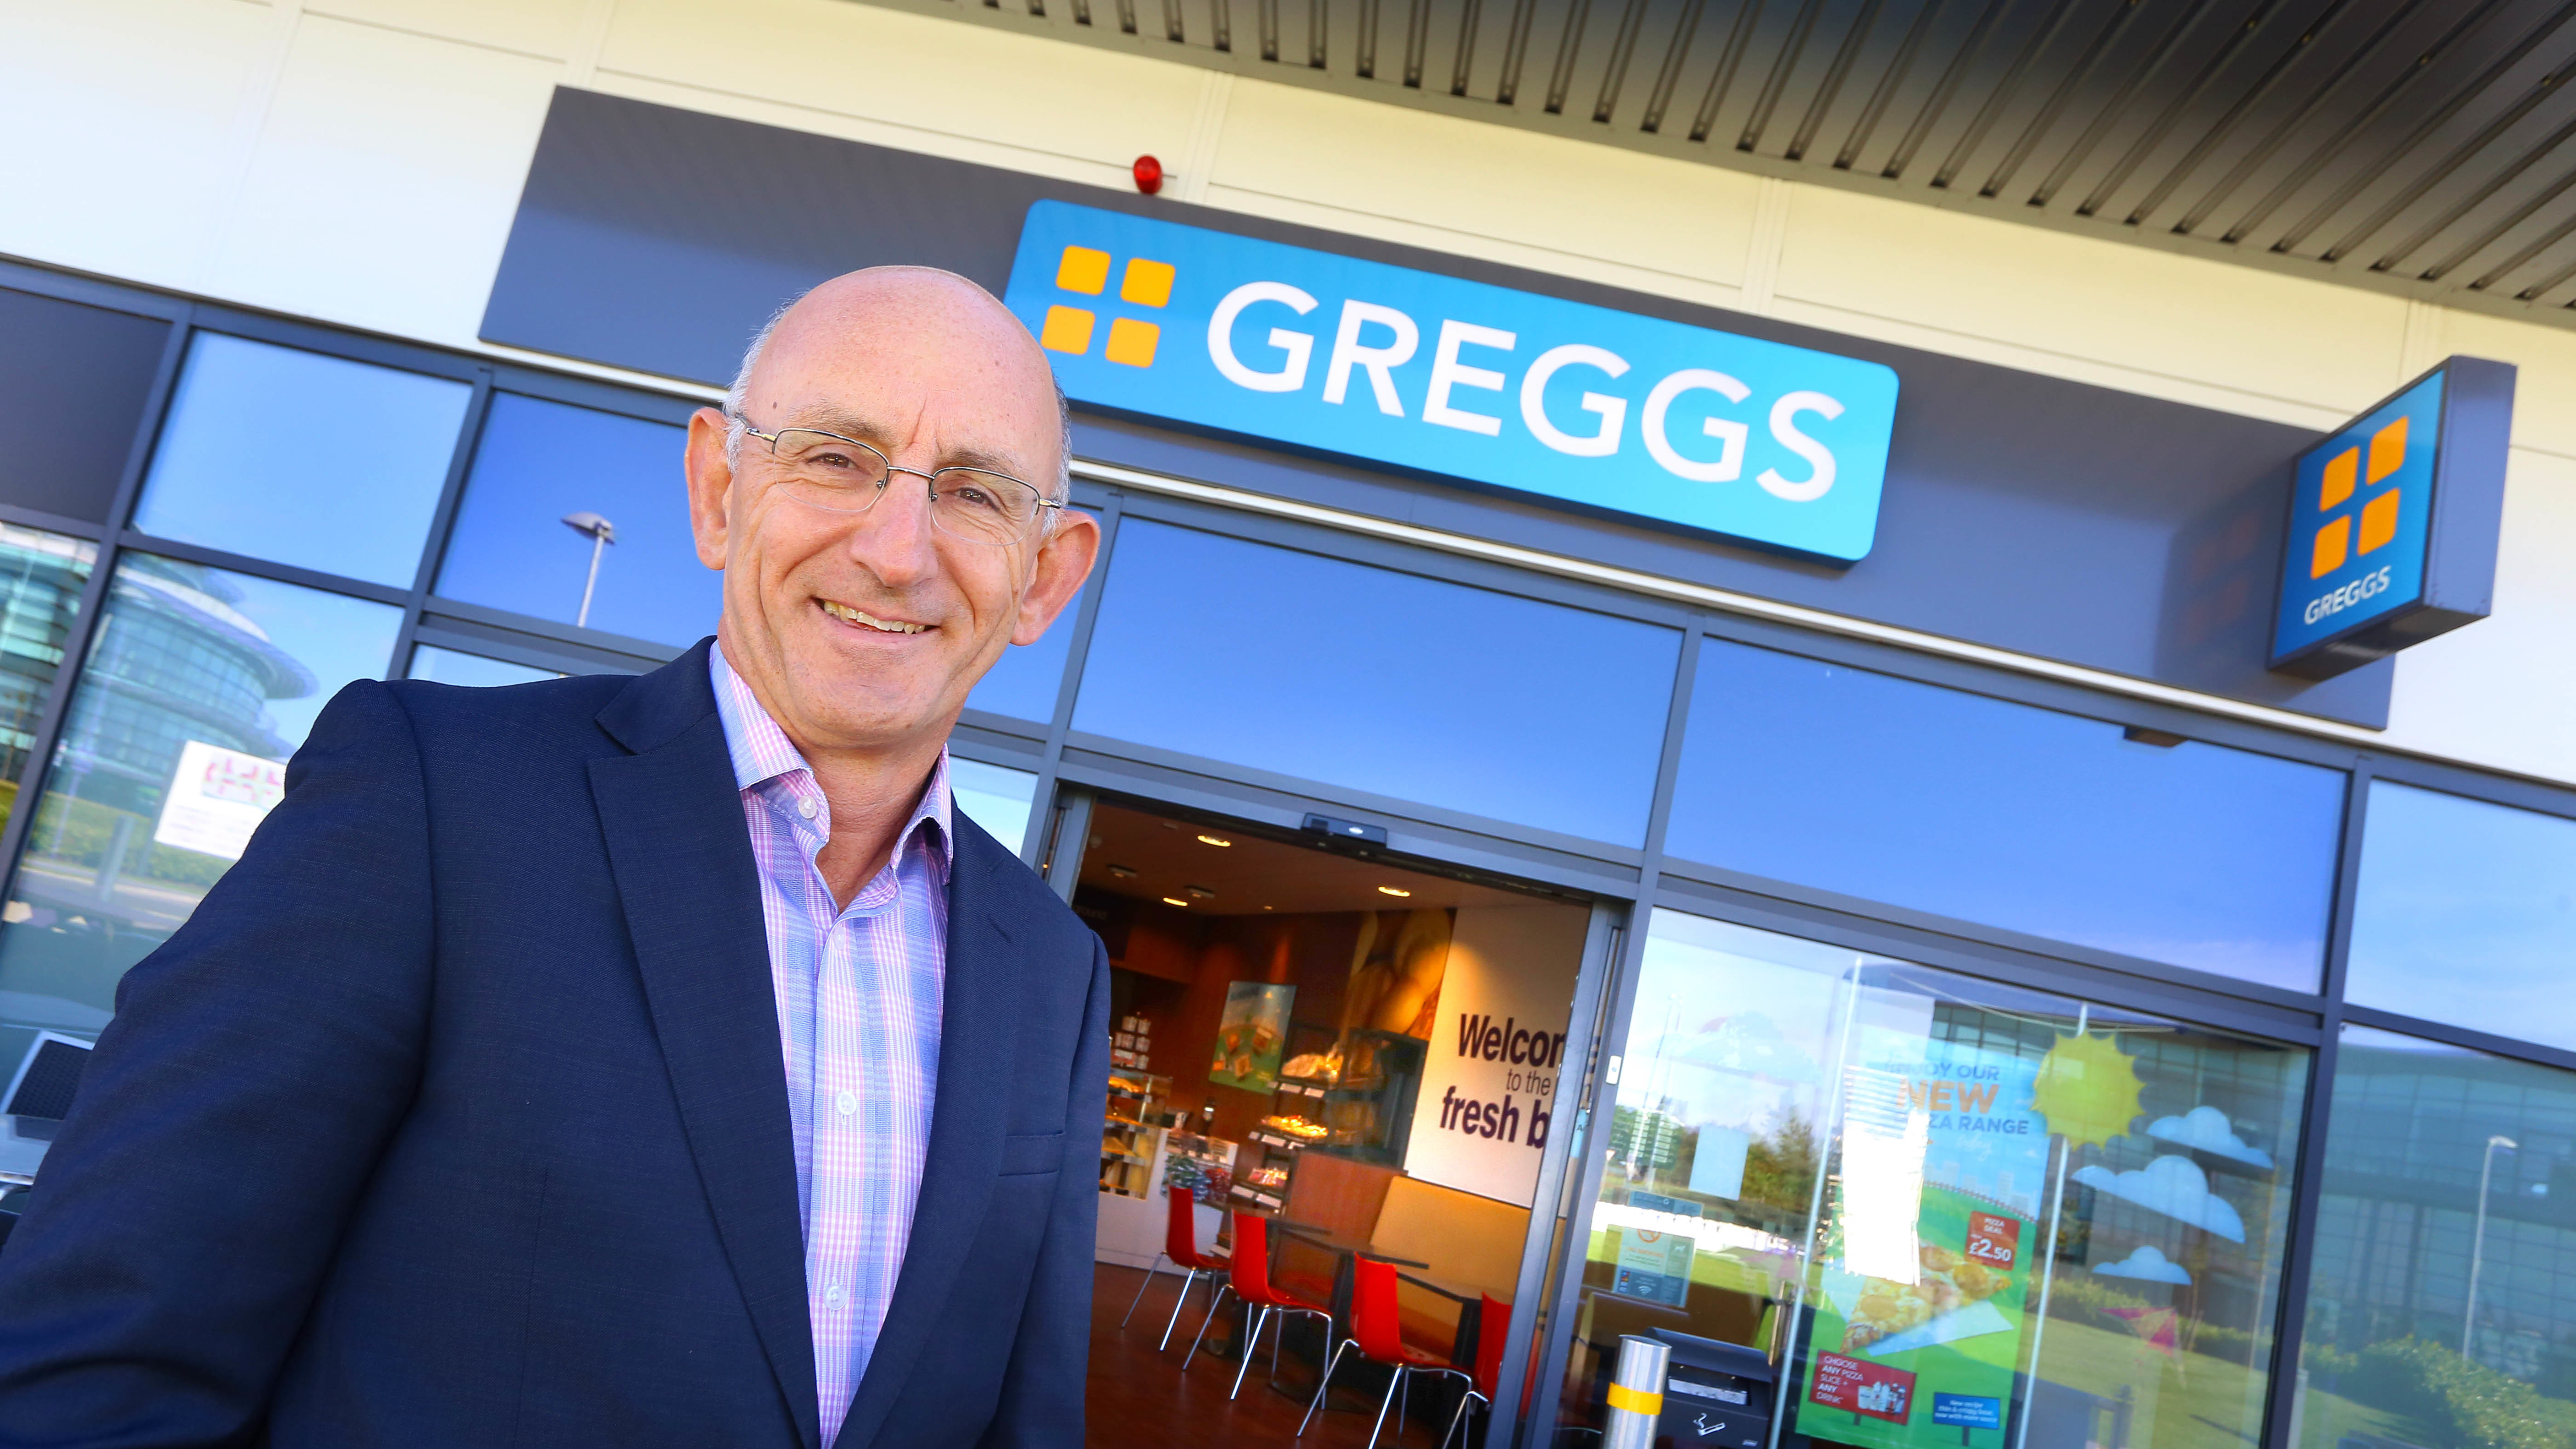 Greggs Boss Is Going Vegan After Watching Netflix Documentary The Game Changers Ladbible